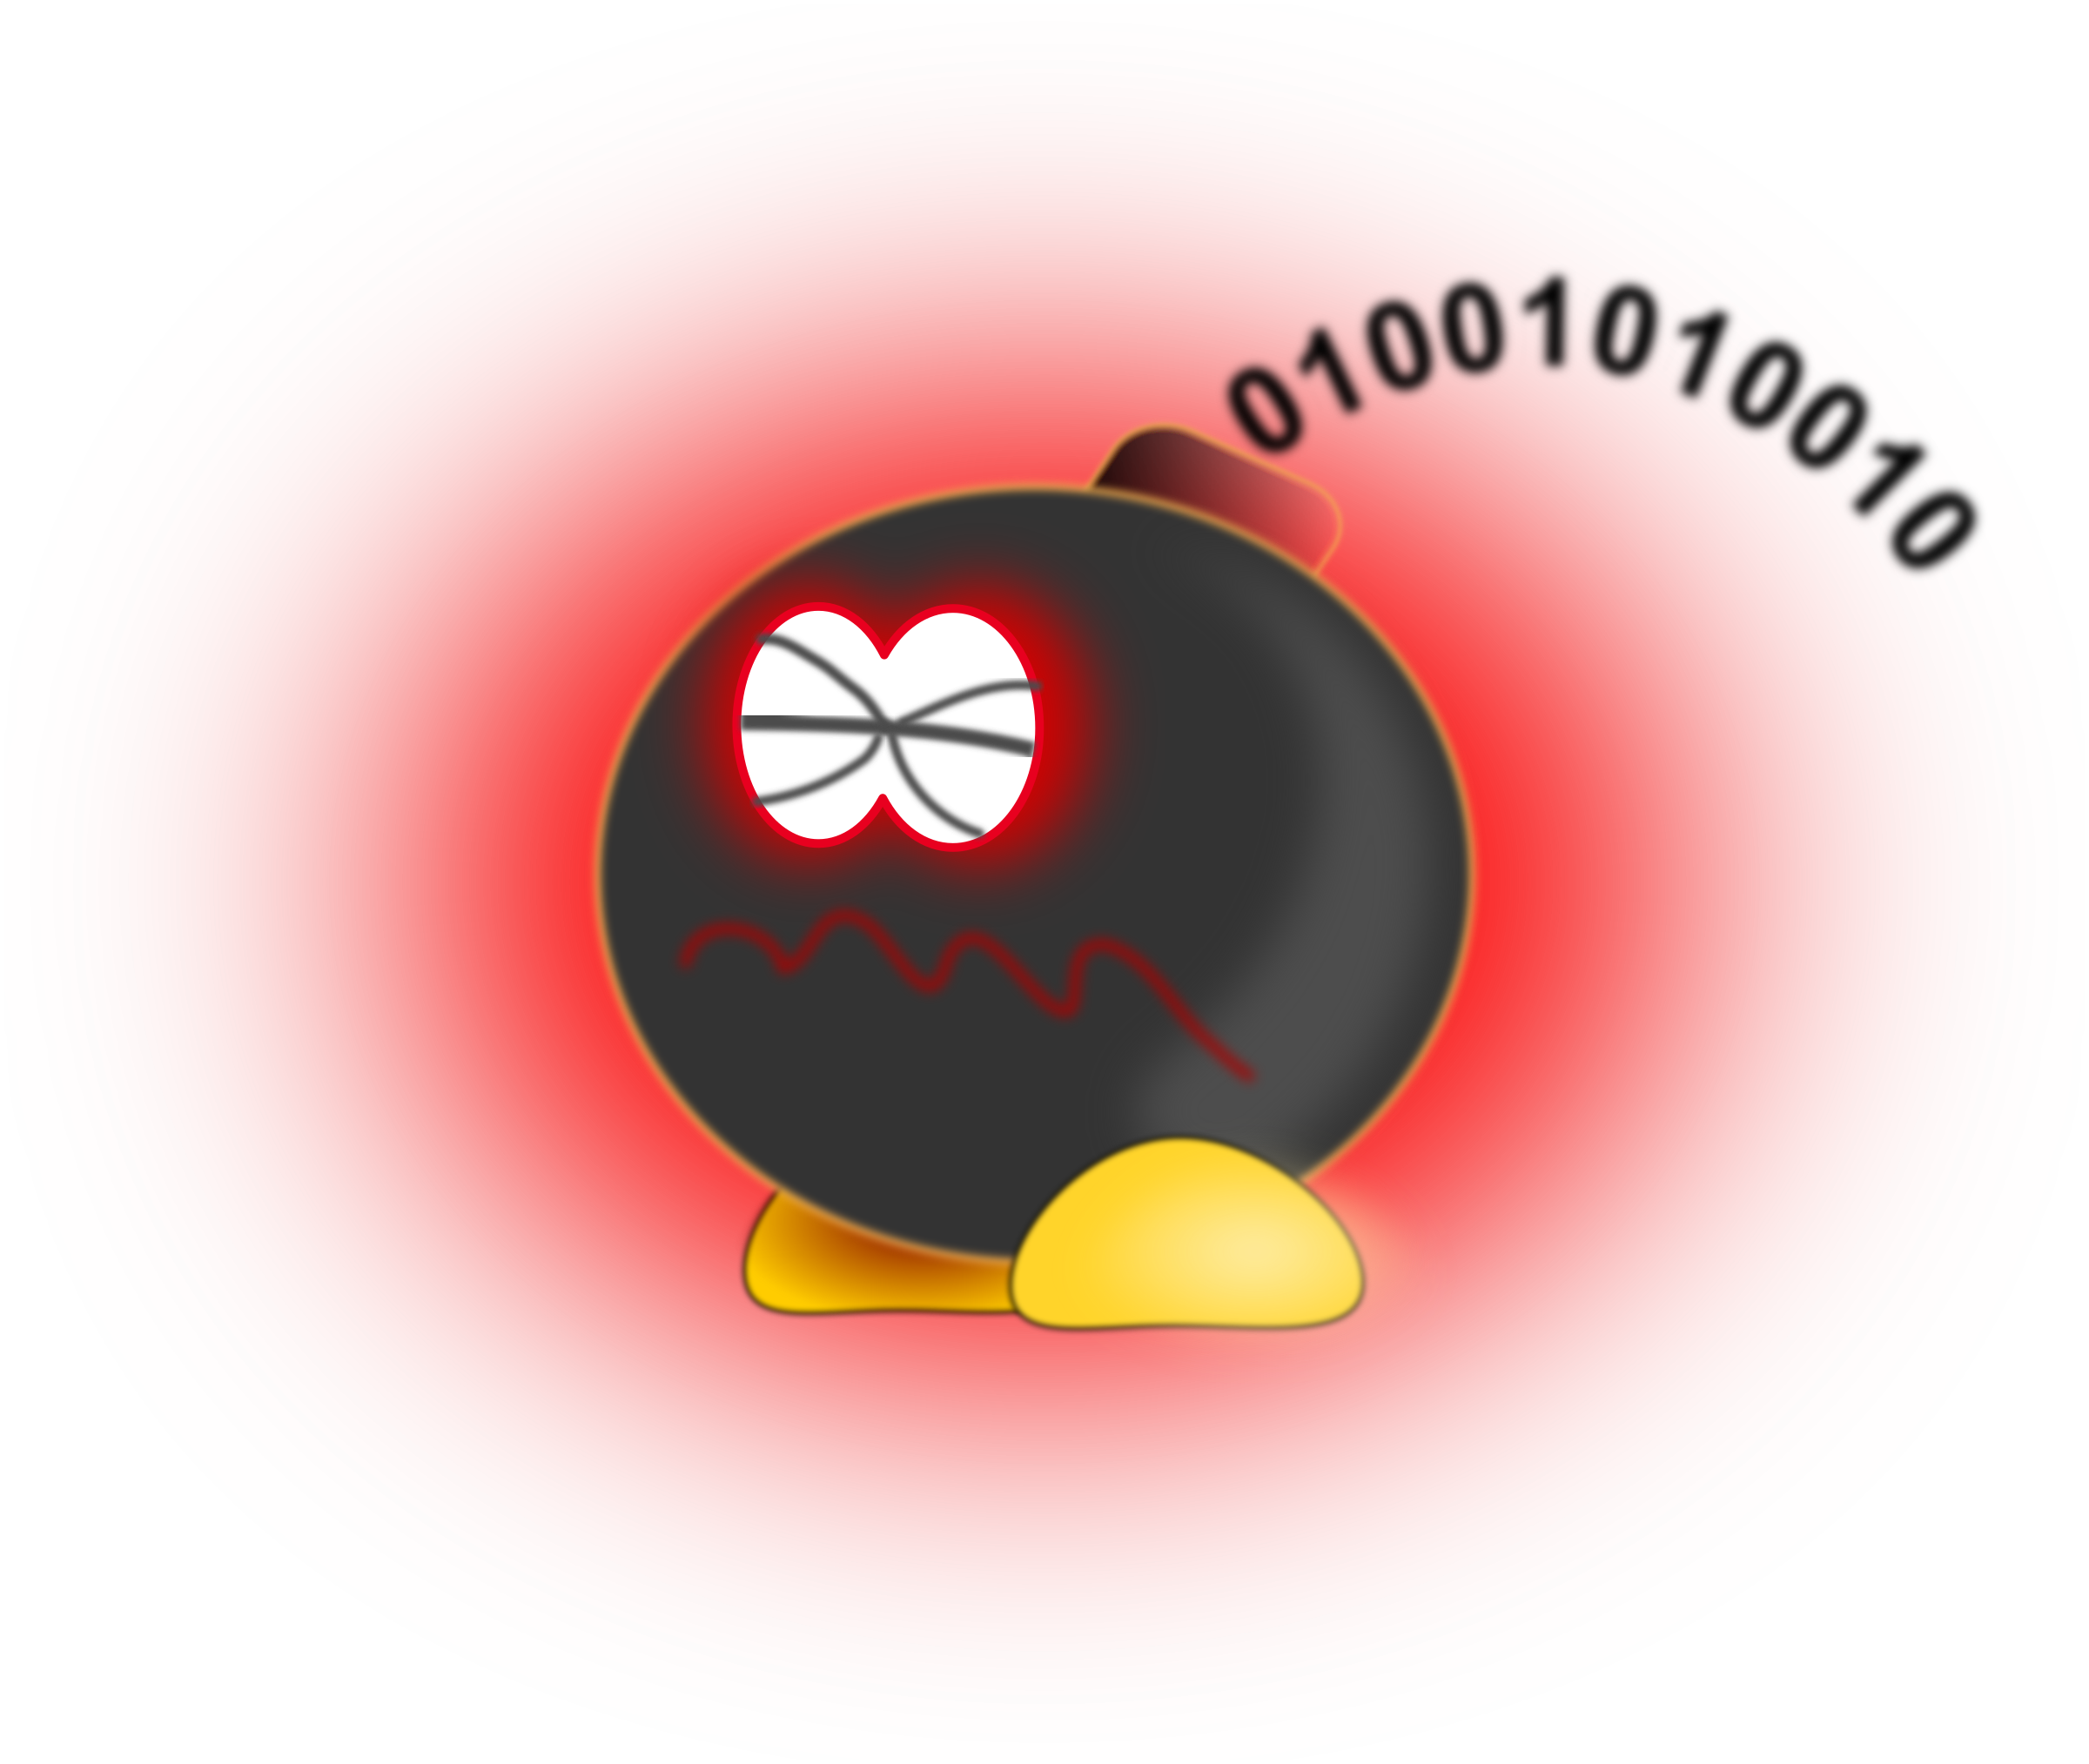 image library download Bomb clipart cartoon. Logic big image png